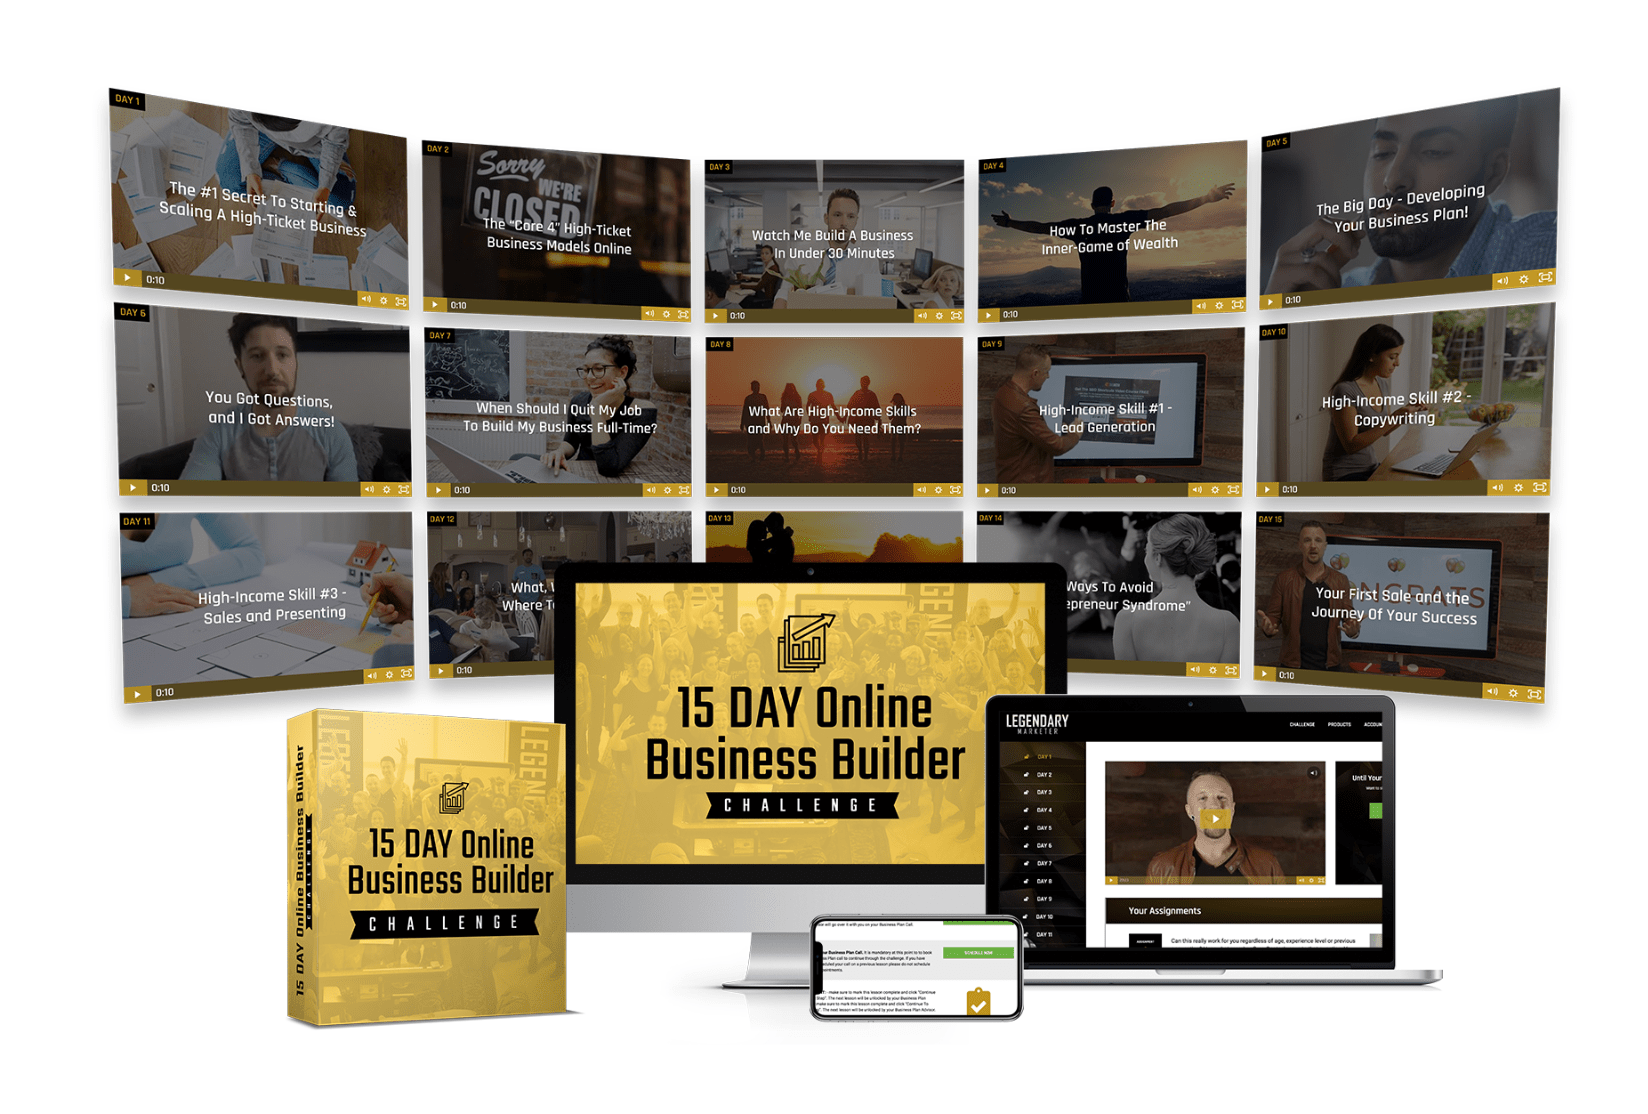 Internet Marketing Program Refurbished Legendary Marketer Warranty